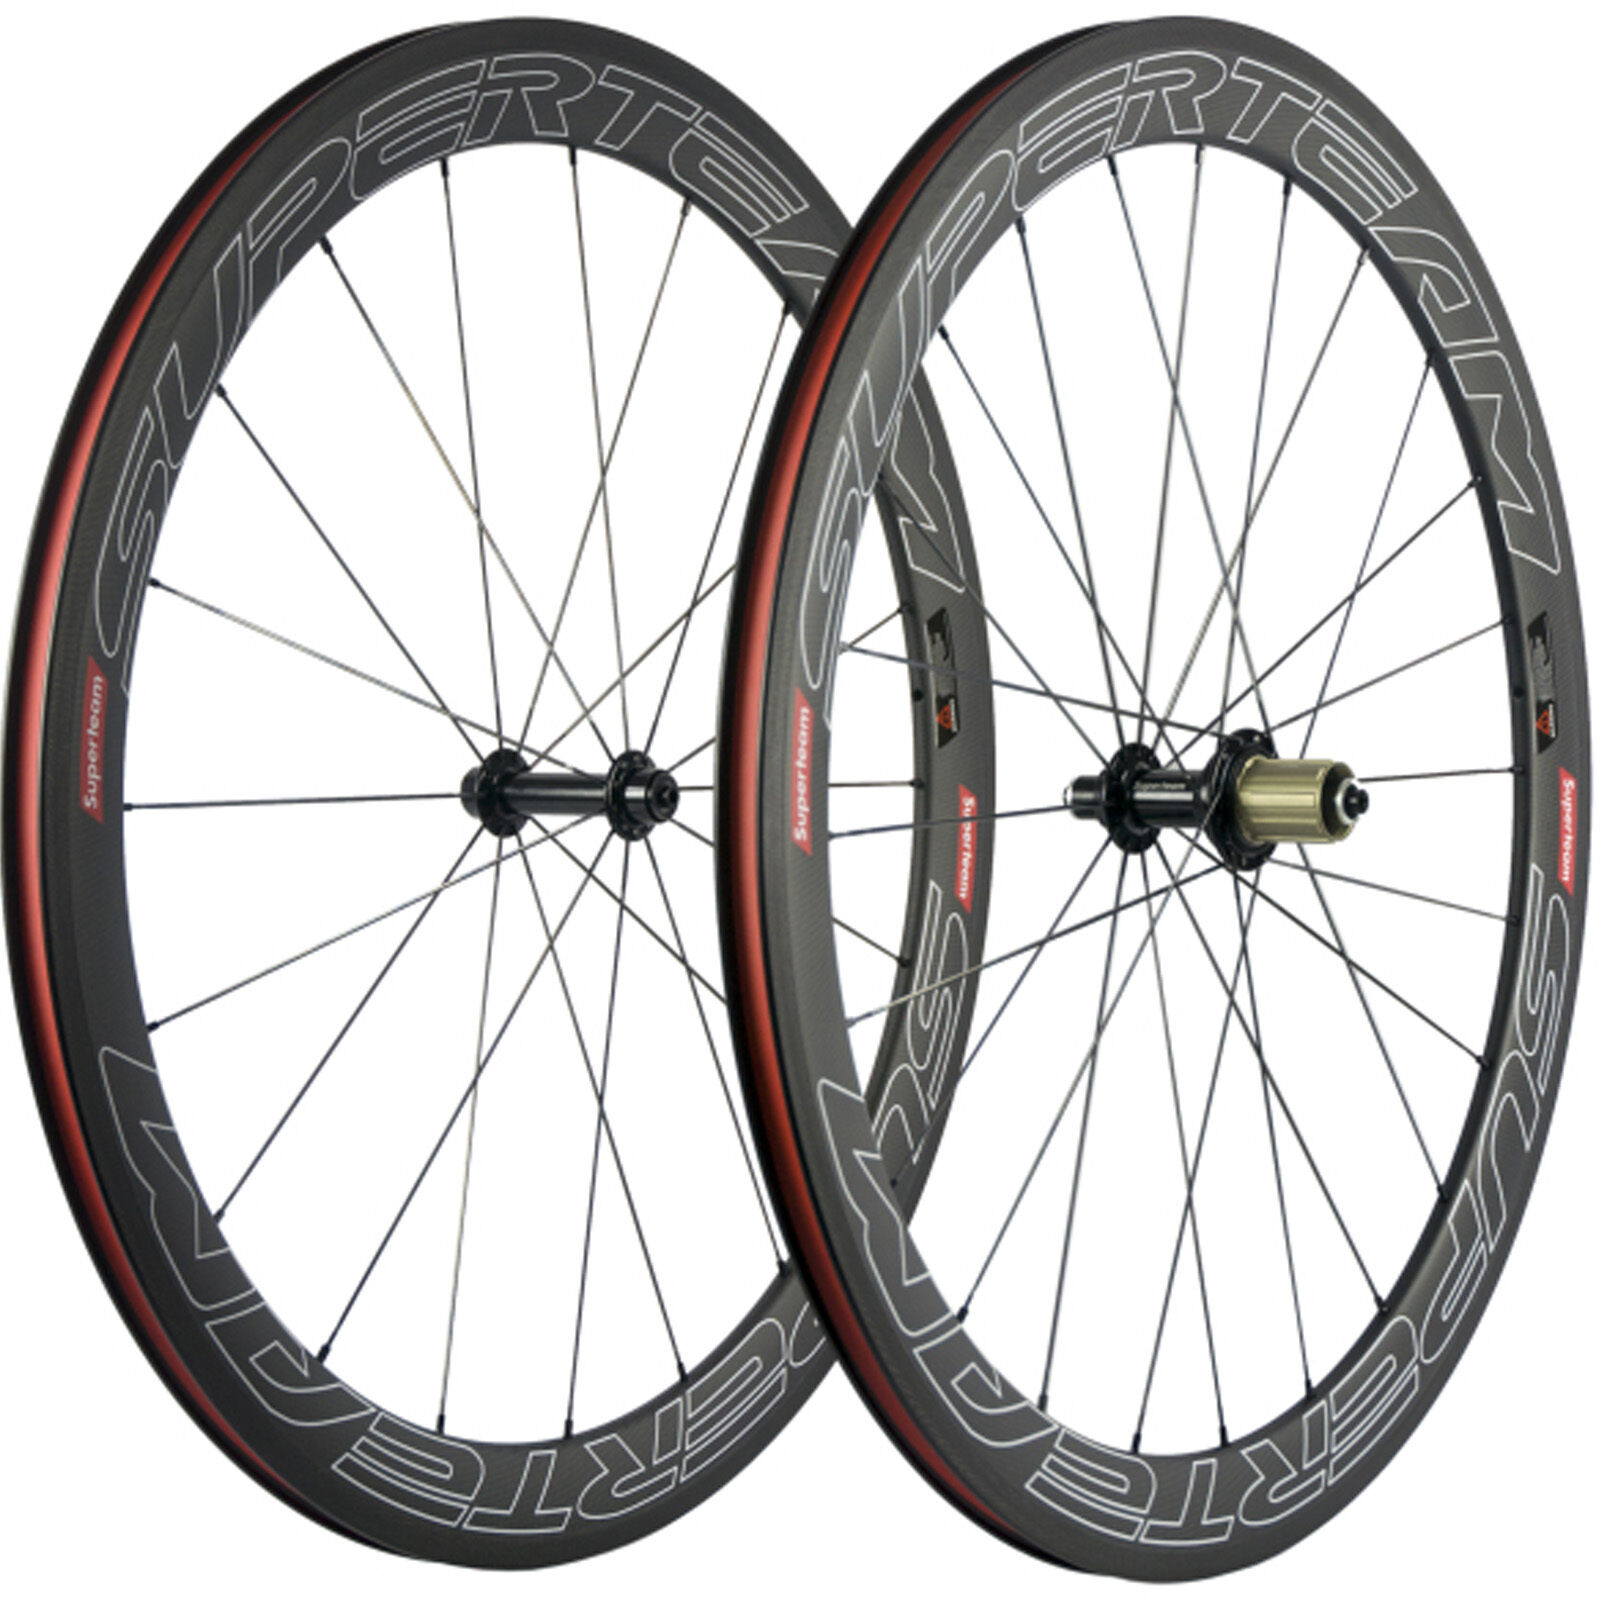 SUPERTEAM  50mm Carbion Clincher Wheels Ceramic R13 Hub Carbon Road Wheels Bike  up to 60% discount